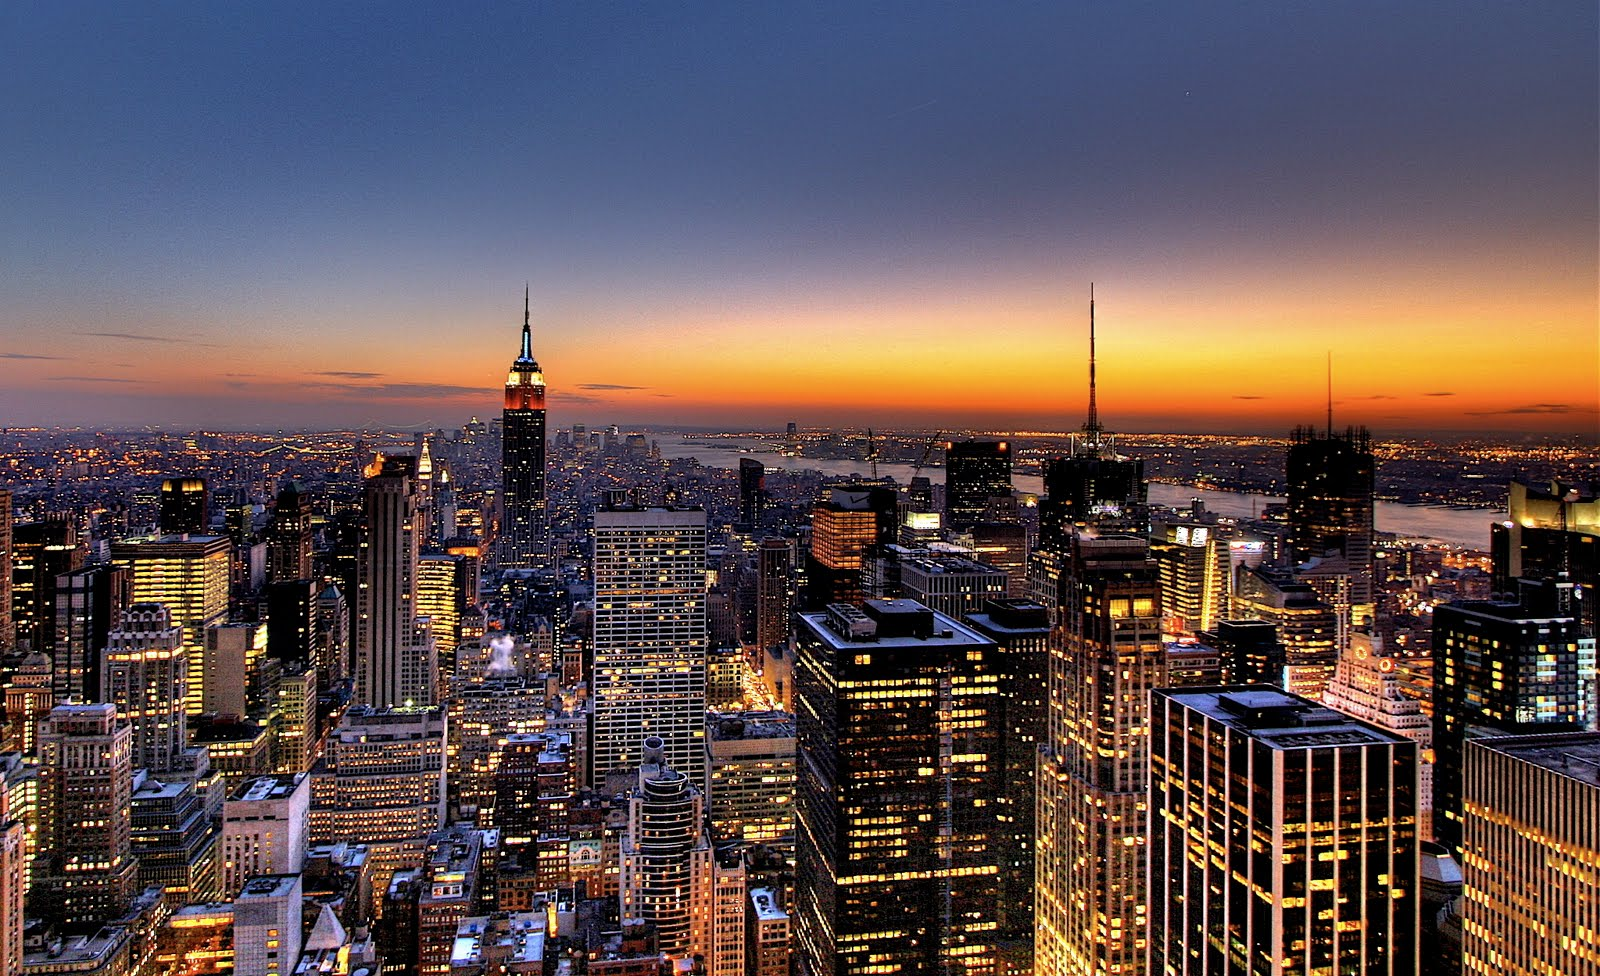 New York City Skyline   Sunset Wallpaper Hd Desktop Wallpaper 1600x976